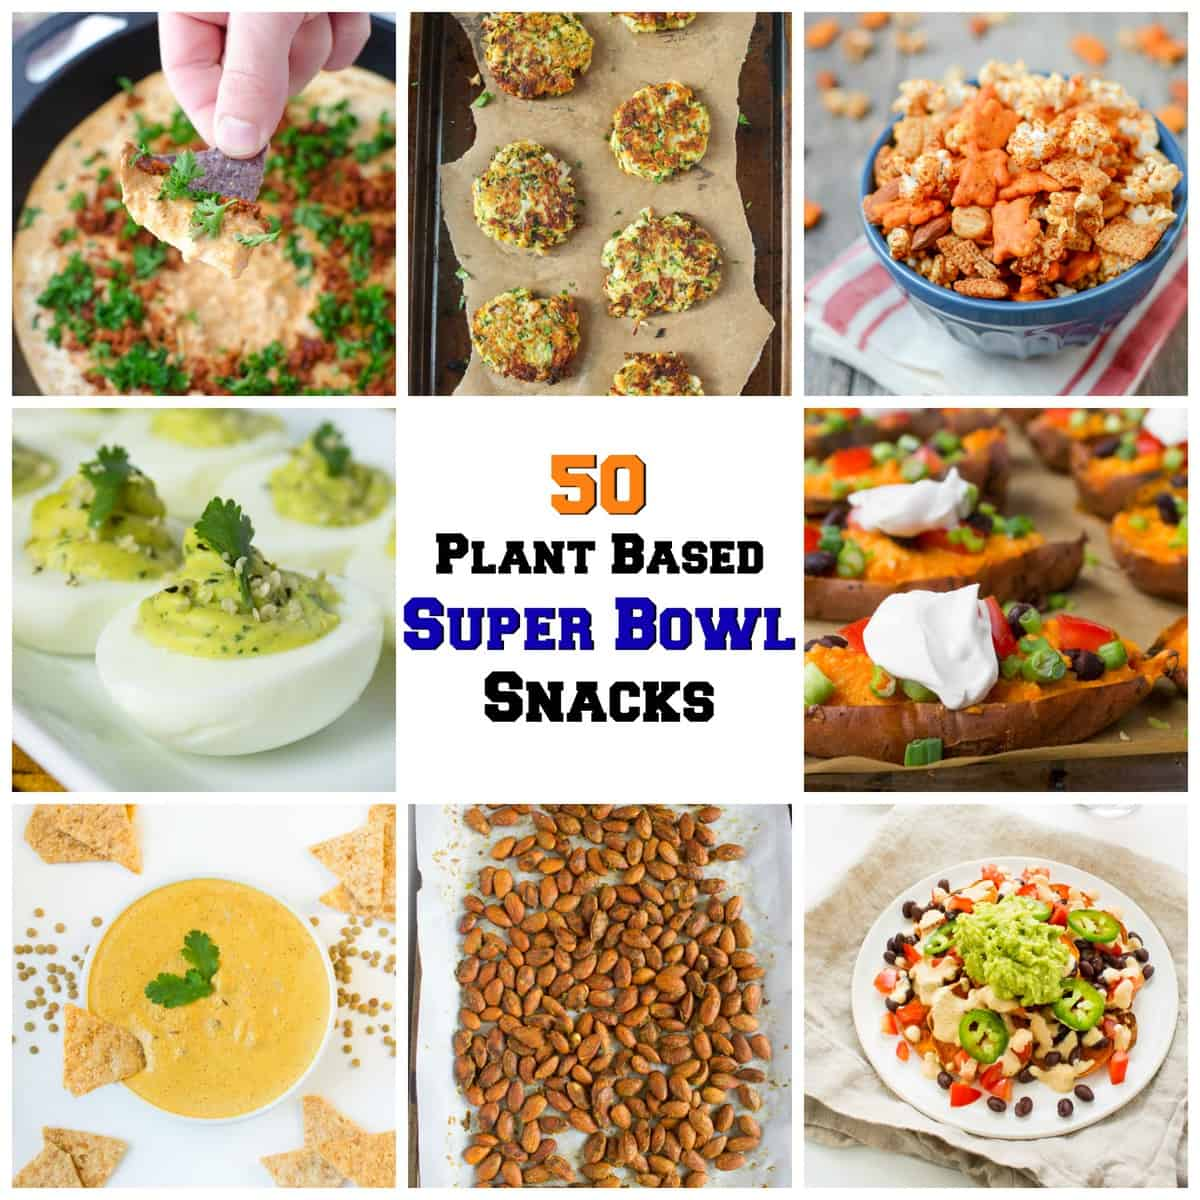 Kara lydon 50 plant based super bowl snacks the foodie dietitian picmonkey collage forumfinder Image collections